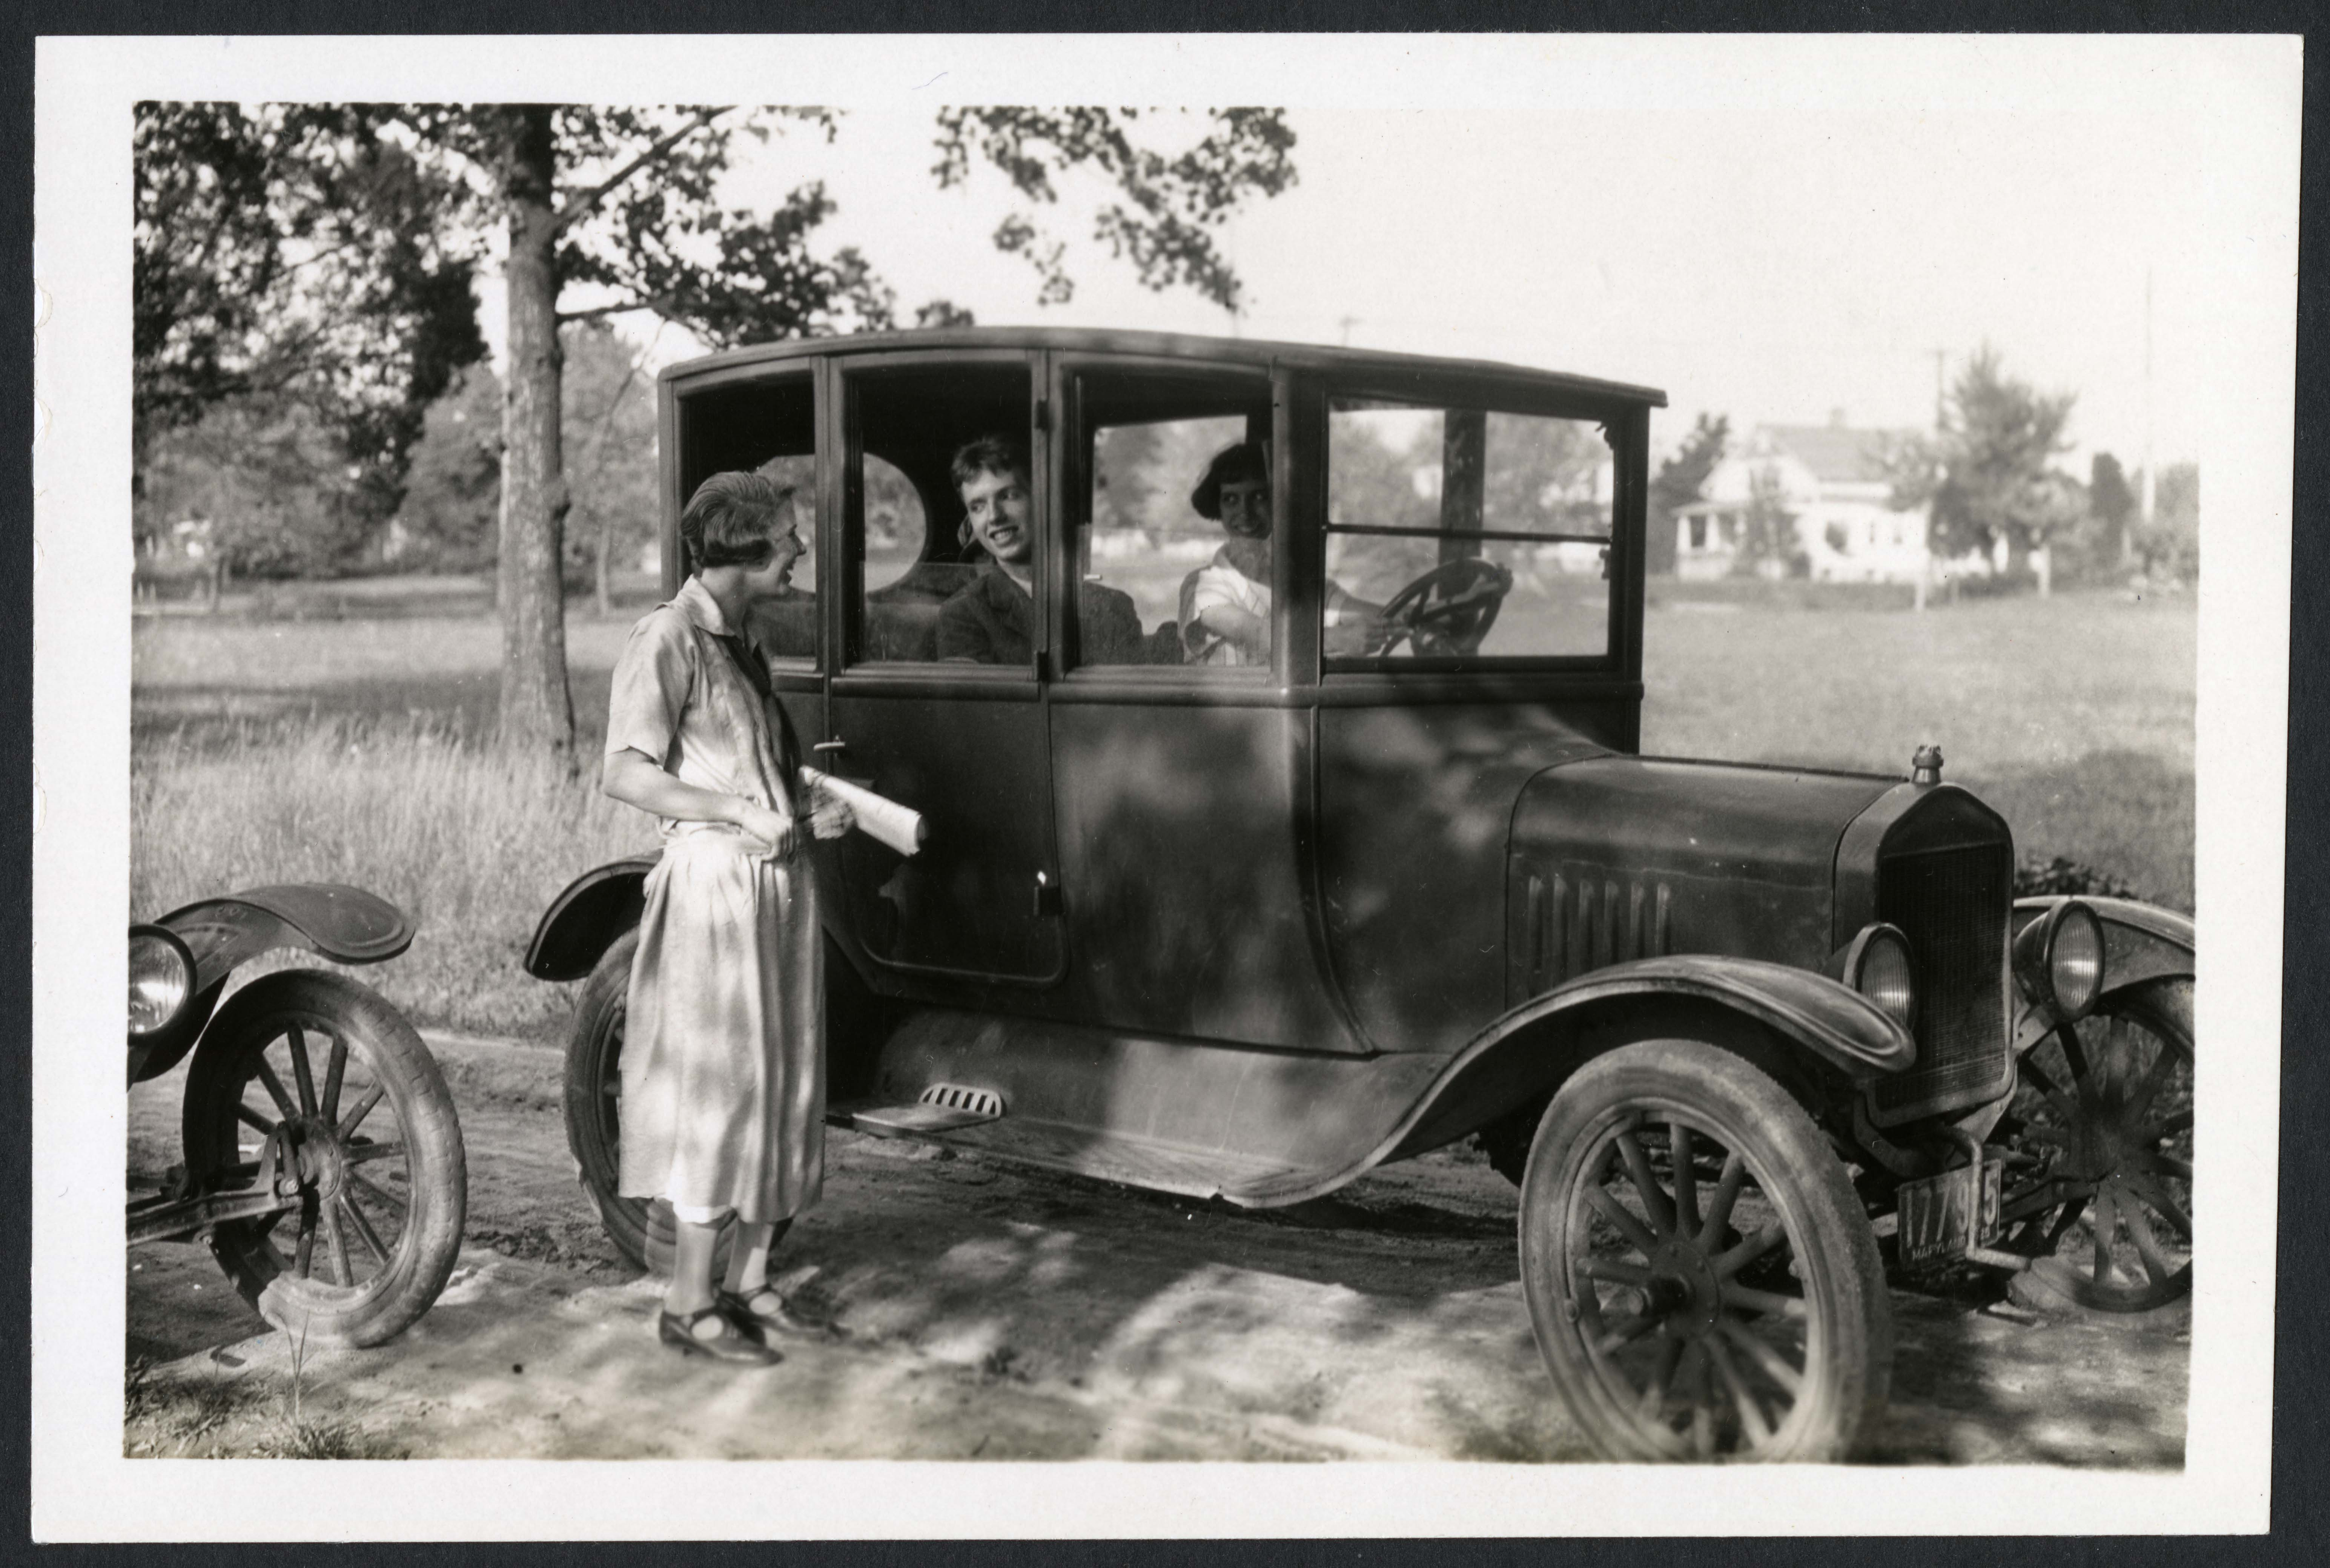 Alice Haines (outside at left), Robert Spencer Ward, and Thelma Hunt (at right, behind the wheel), p